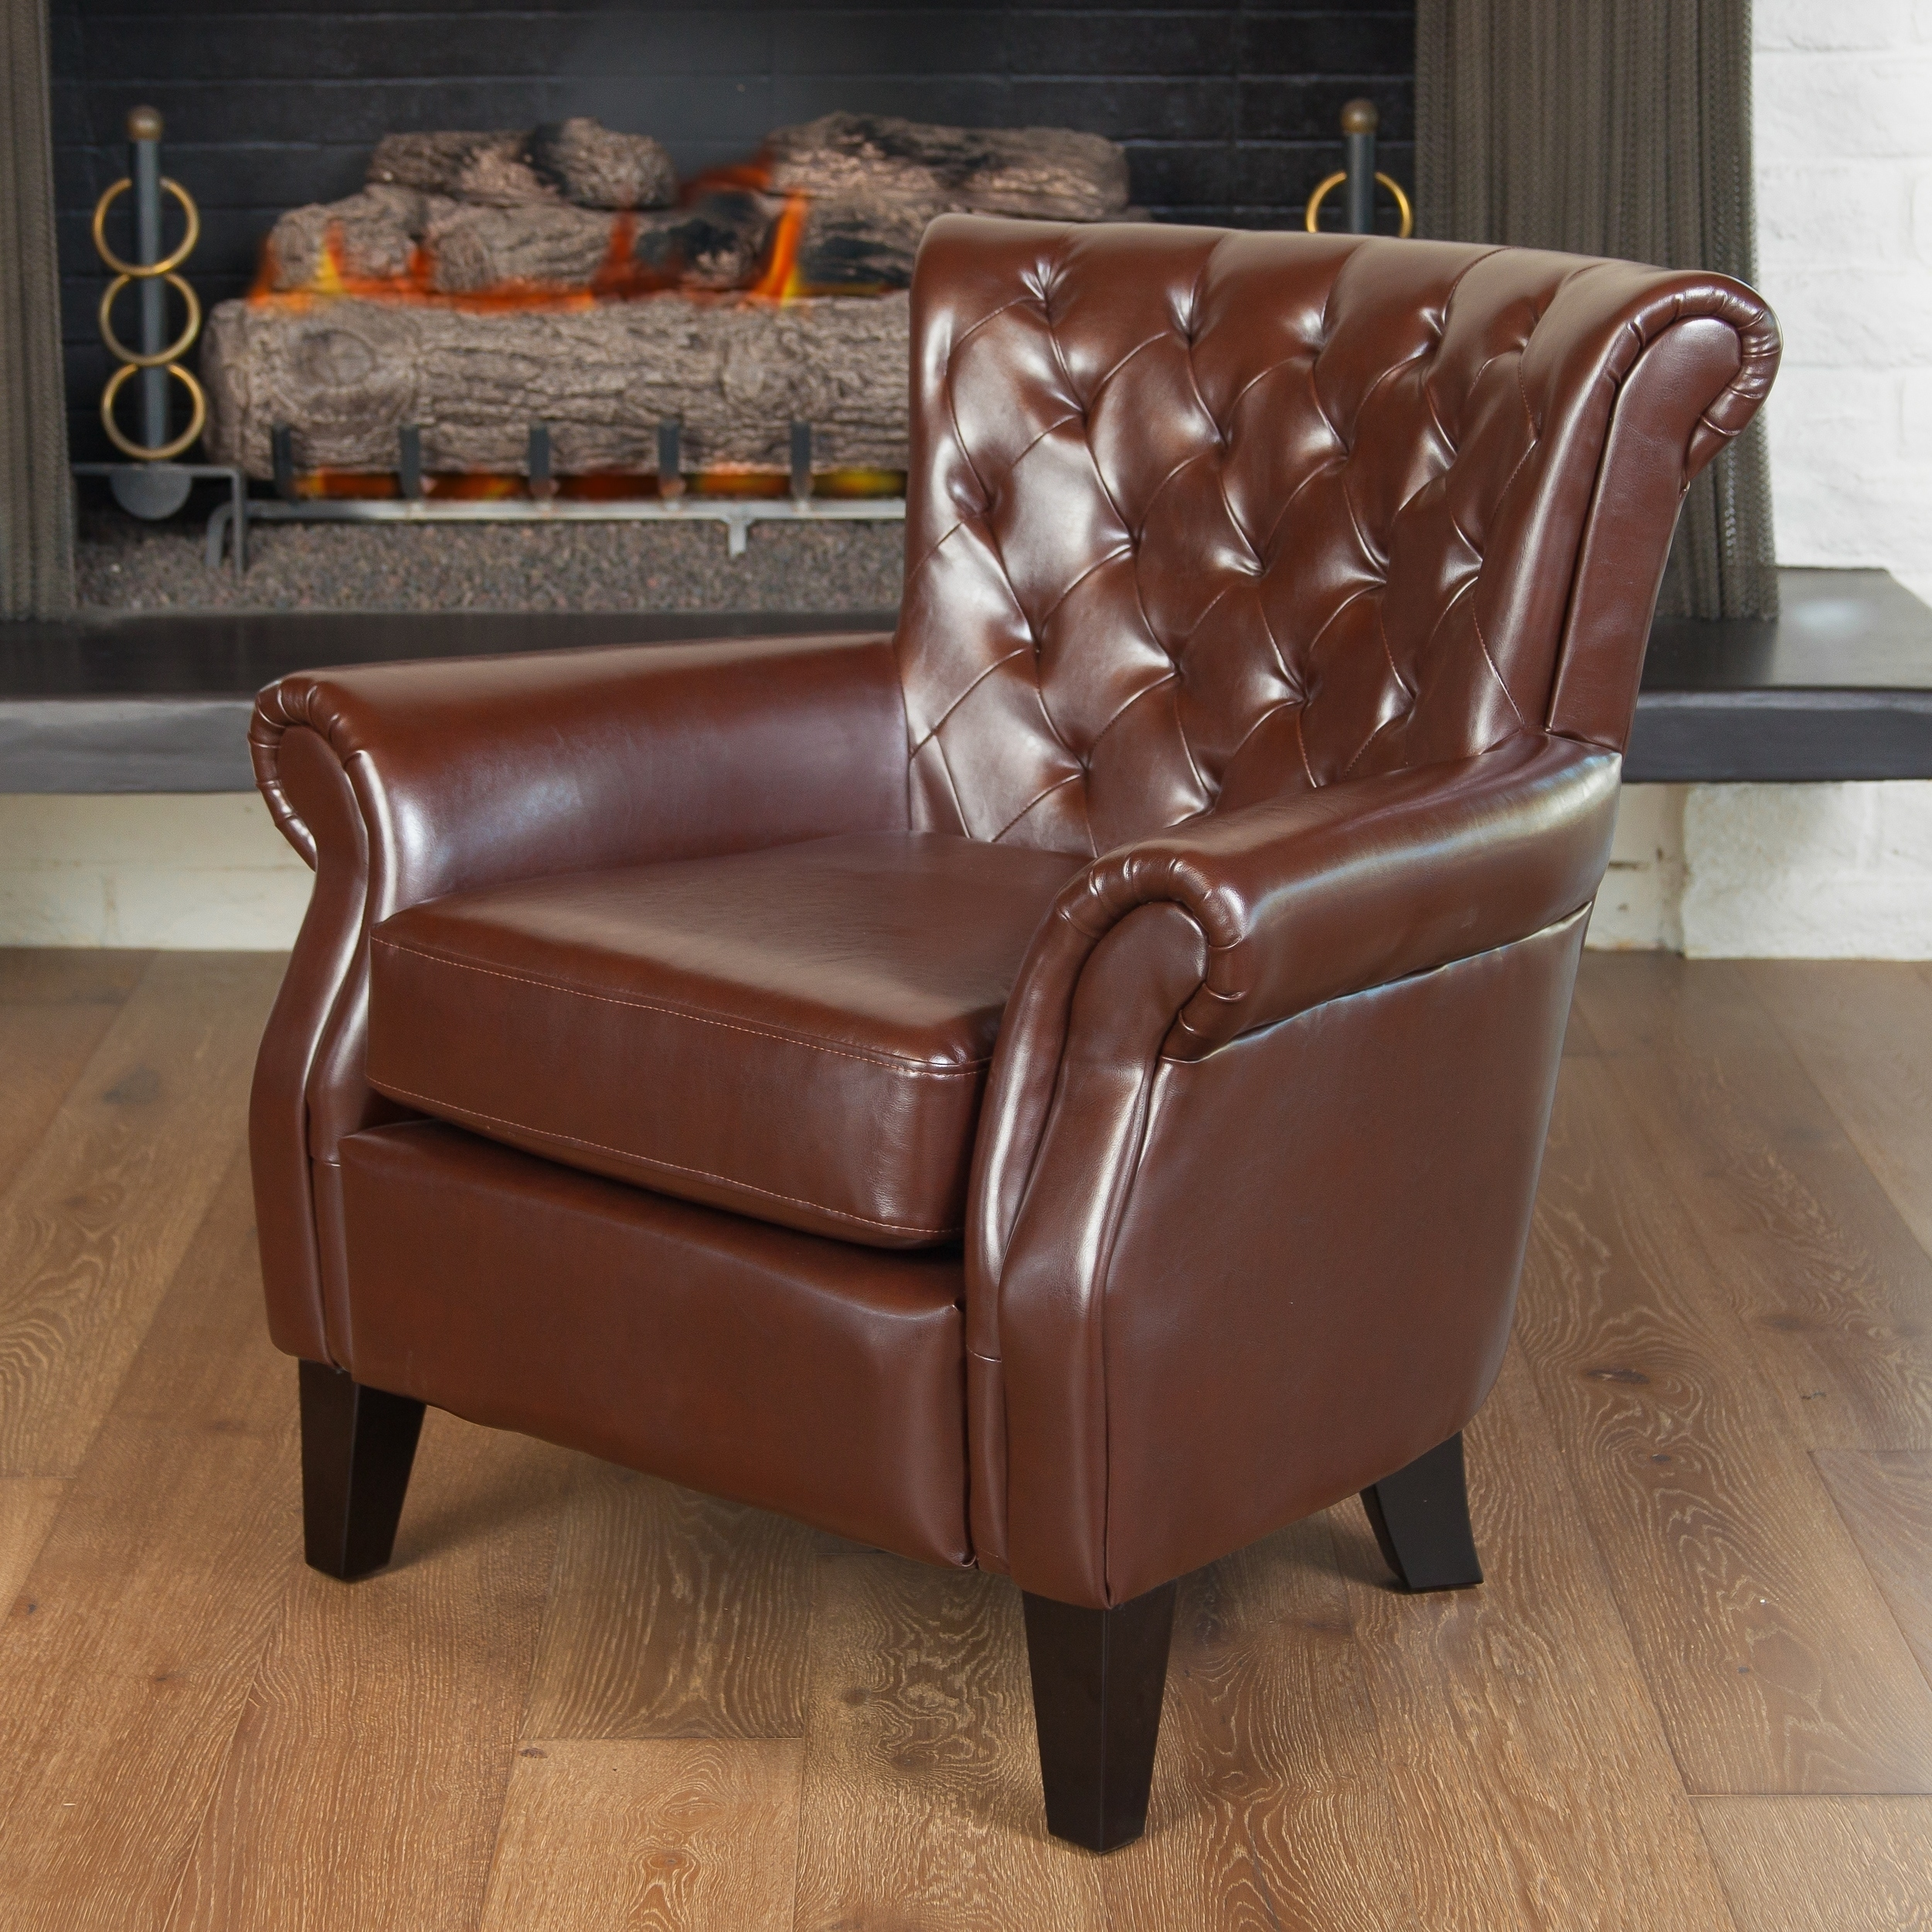 Christopher Knight Home Franklin Brown Tufted Bonded Leather Club Chair at Sears.com